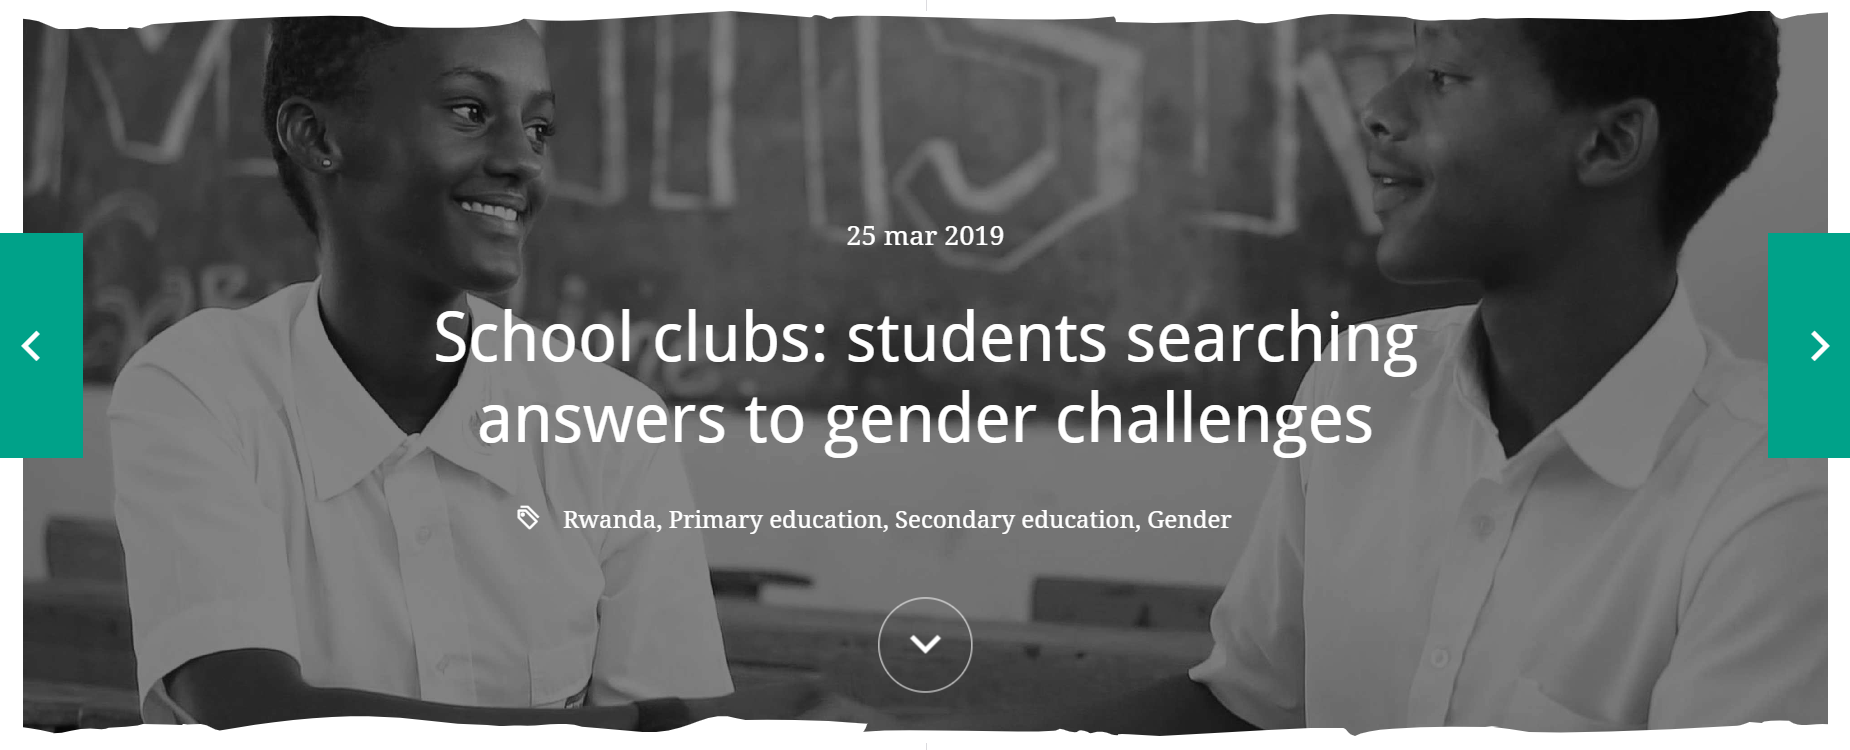 School clubs: students searching for answers to gender challenges